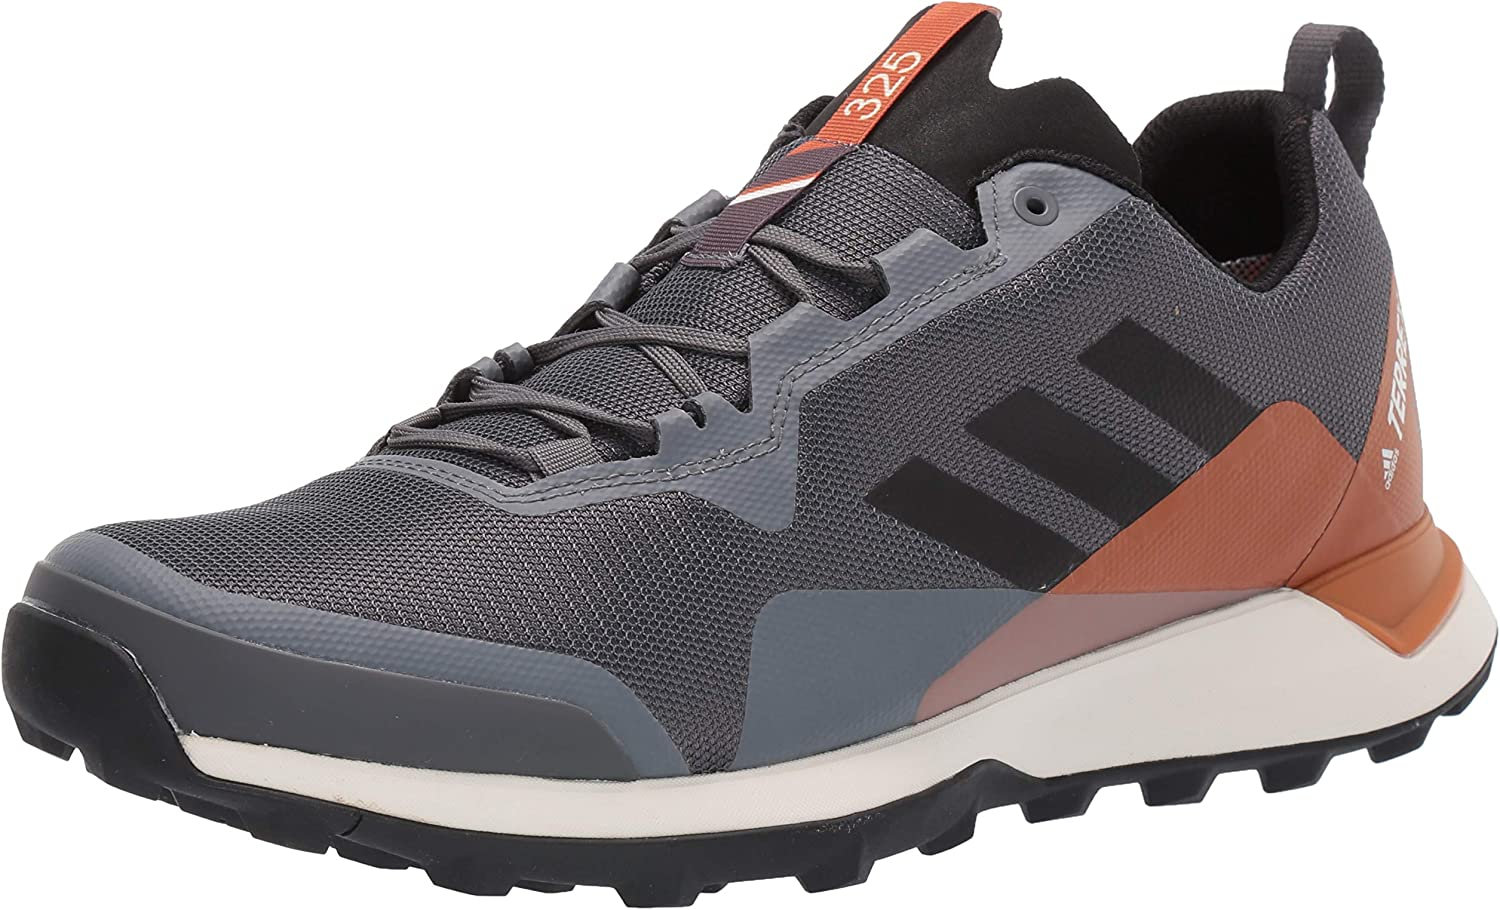 adidas Outdoor Men s Terrex CMTK GTX Trail Running Shoe, Grey Five Black TECH Copper, 9 D US